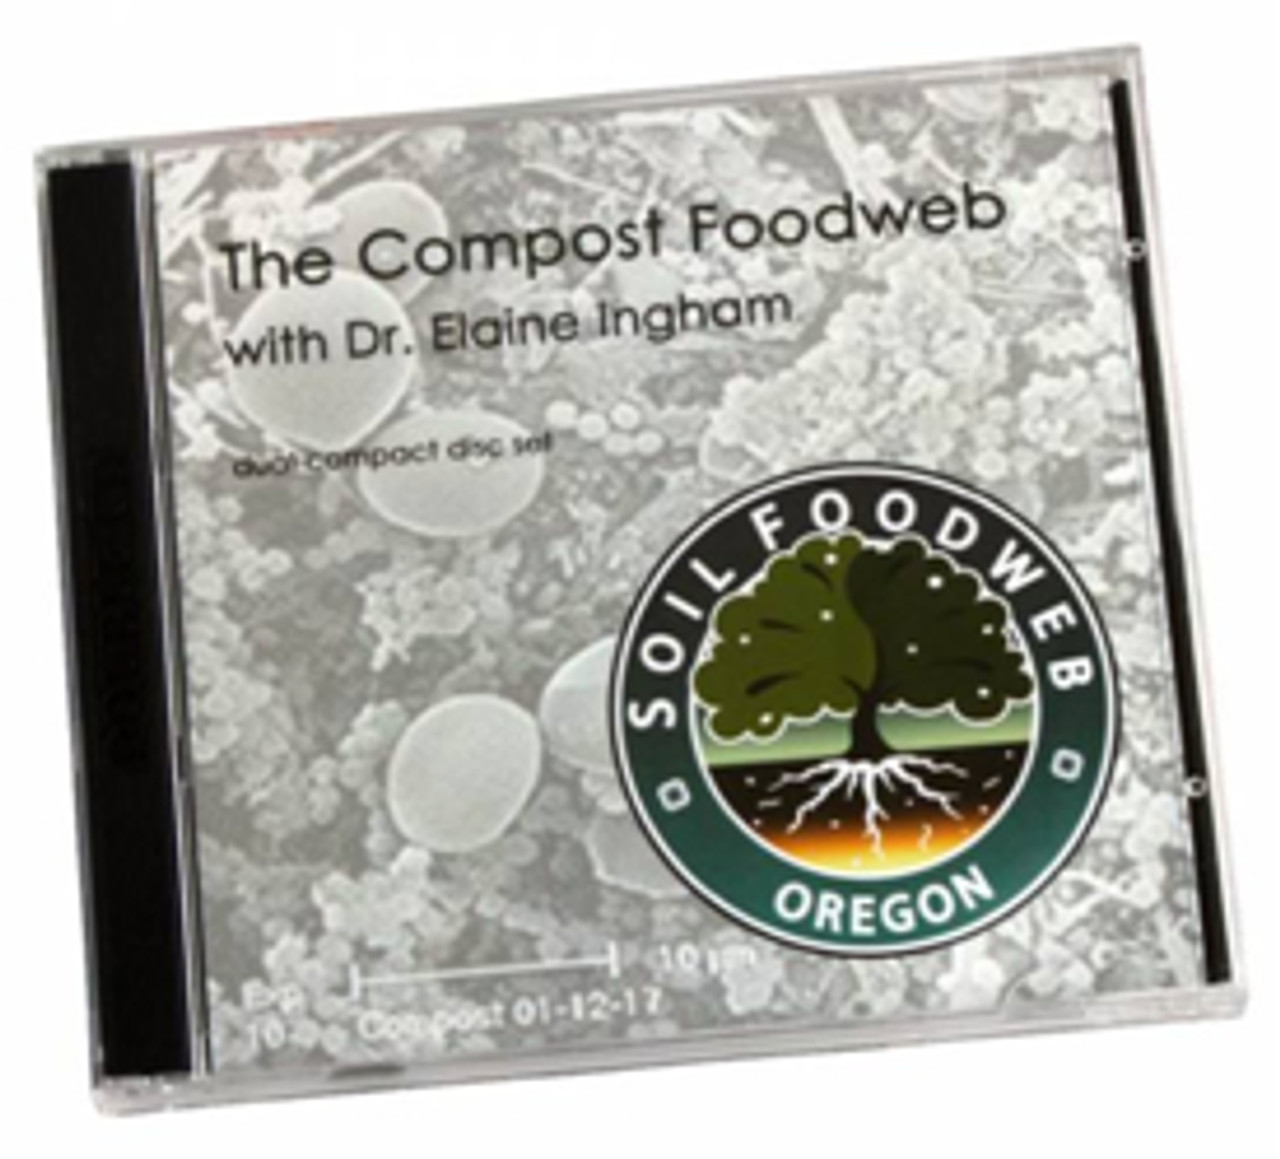 The compost Foodweb CD